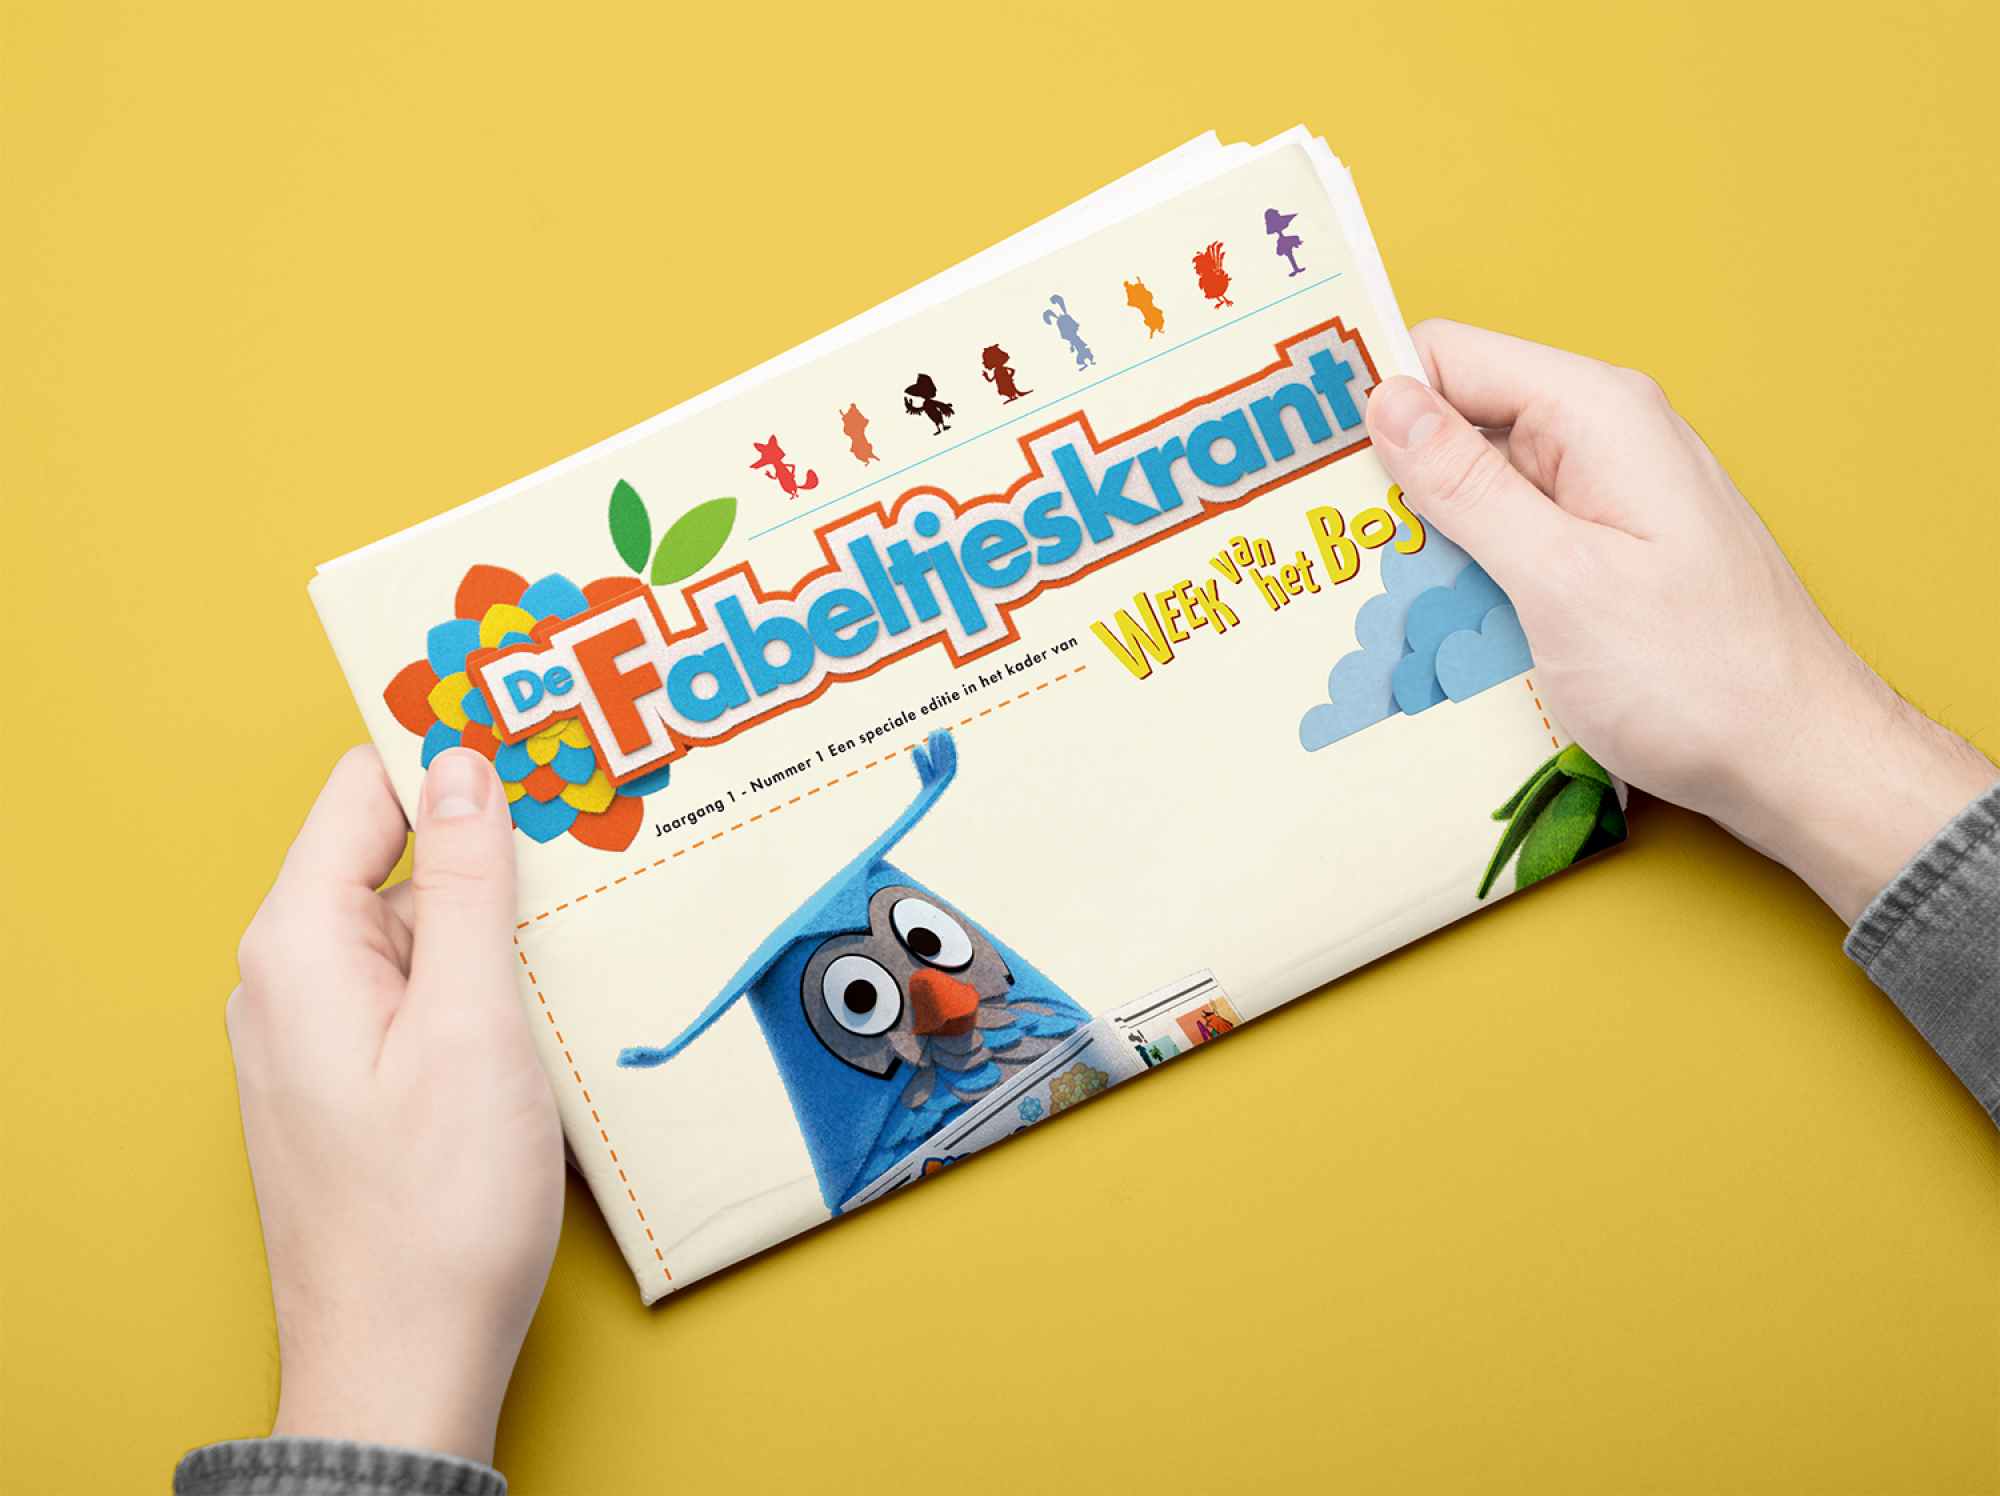 Fabeltjeskrant Week van het bos illustration educational package gent